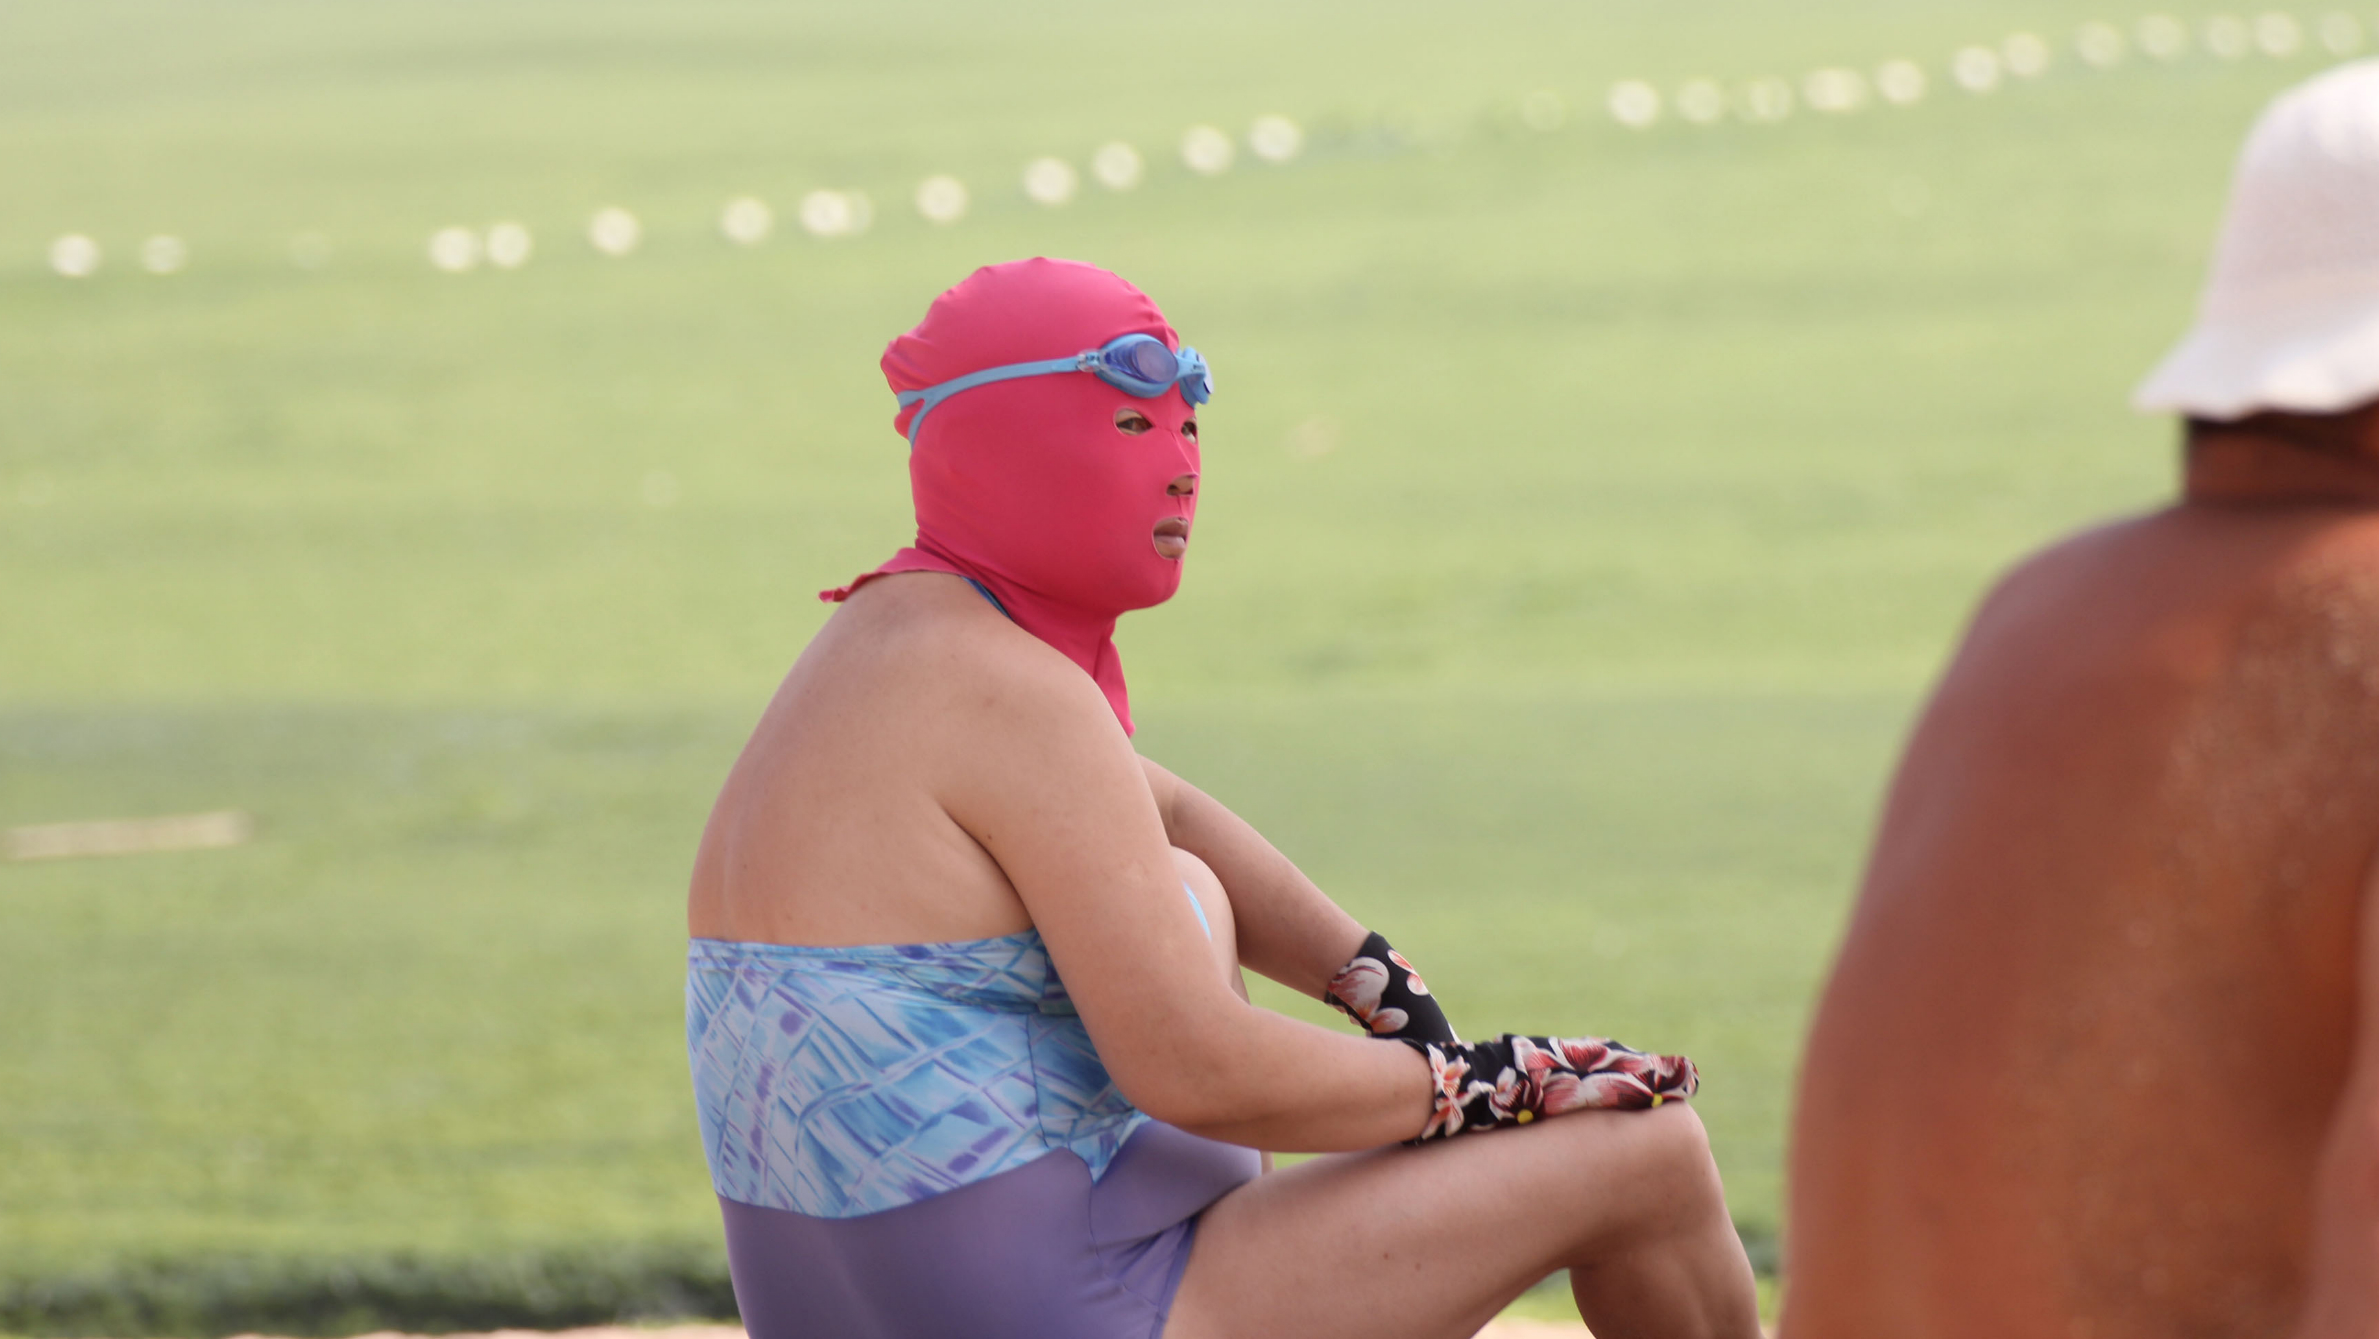 A masked female holidaymaker looks on at a beach resort on a scorching day in Qingdao city, east Chinas Shandong province, 3 July 2013. Holidaymakers are flooding to the beach resorts to cool down in the eastern Chinese coastal city of Qingdao as heat waves are sweeping through many parts of China. A group of female swimmers are spotlighted among the others as they dress their heads up with colorful masks, making them look like masked robbers or terrorists. Dubbed as the bikini for faces, the mask is used to protect the face of its user from being tanned by scorching sunlight and stung by jellyfish. Priced at 15-20 yuan (US$2.44-US$3.26) apiece, the mask is quite popular among middle-aged and elderly women.(Imaginechina via AP Images